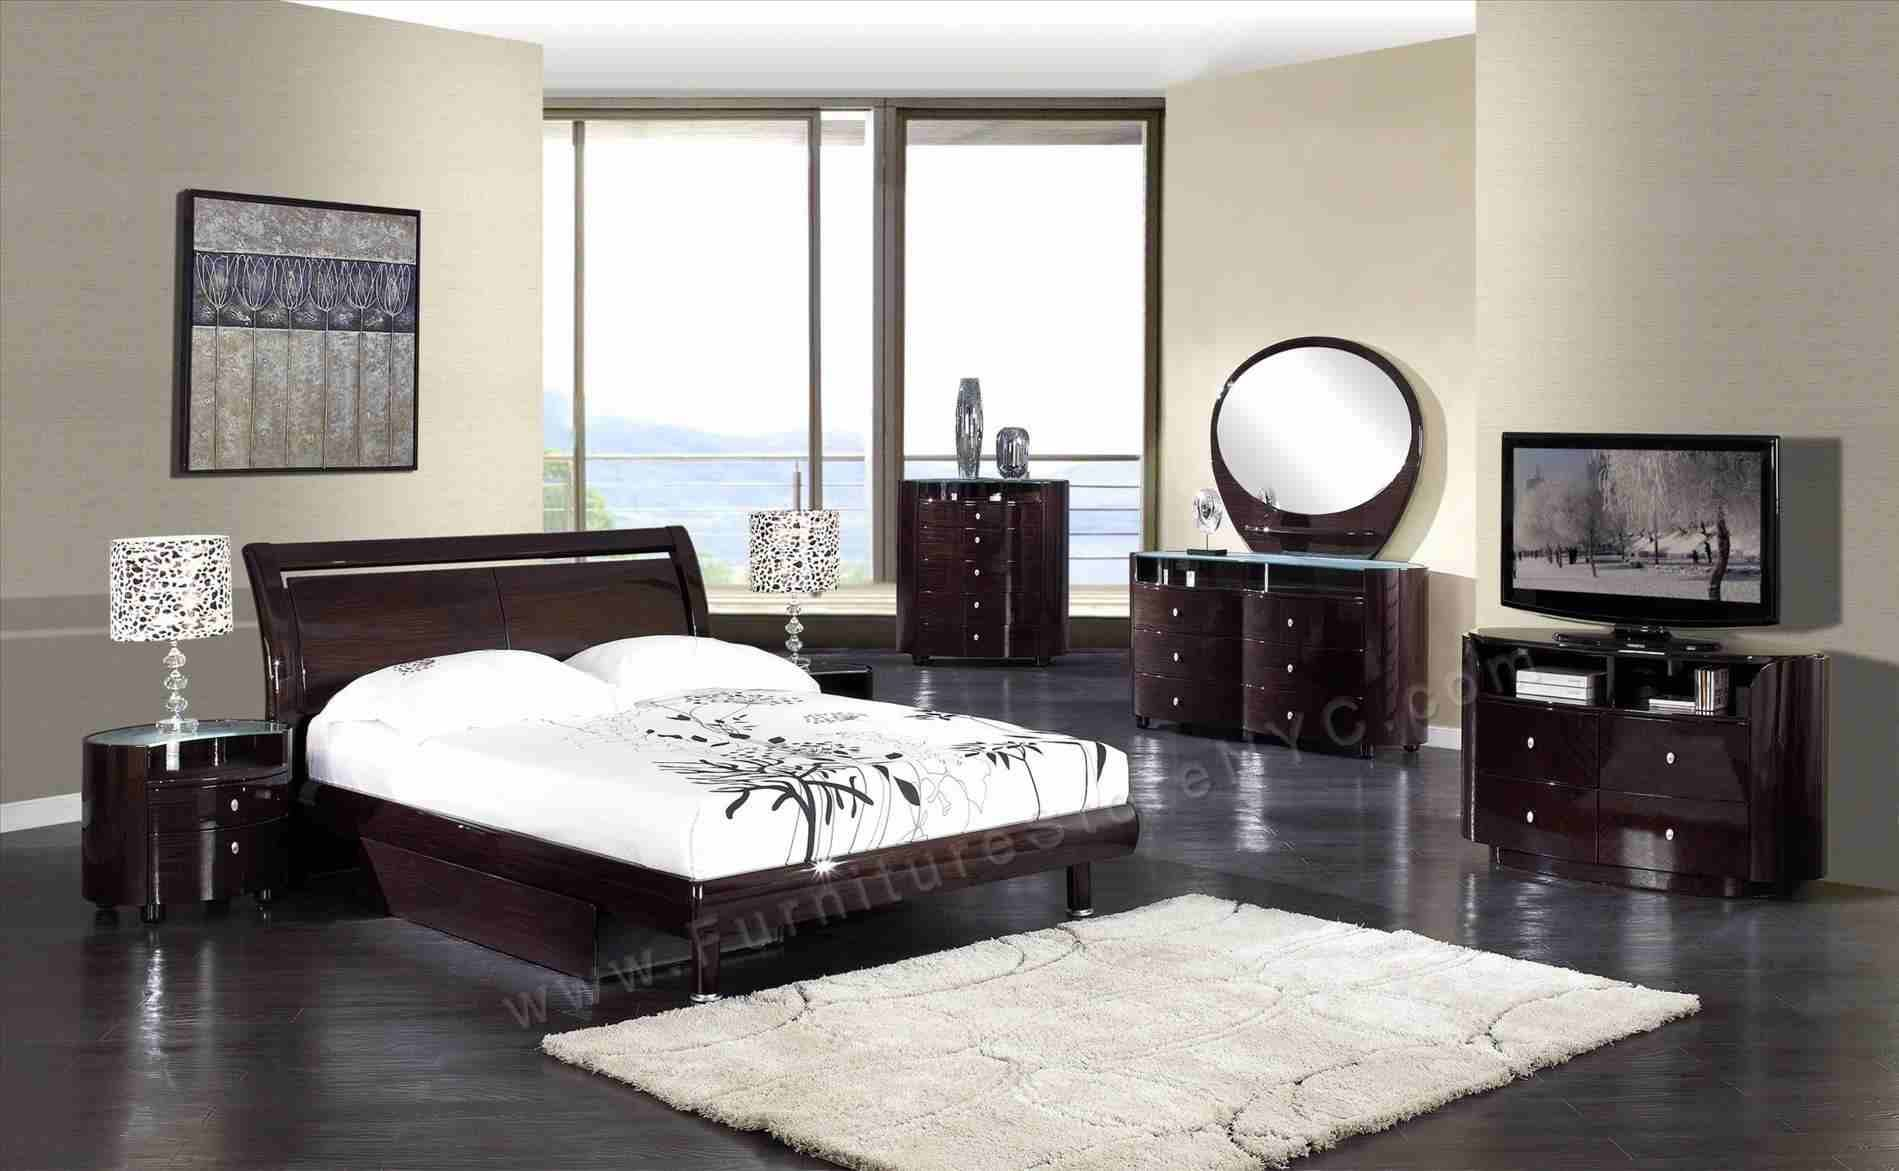 Modern Wood Bedroom Furniture Beds Modern Oak Bedroom Furniture Uk Modern Woode White Bedroom Design Contemporary Bedroom Furniture Sets Contemporary Bedroom